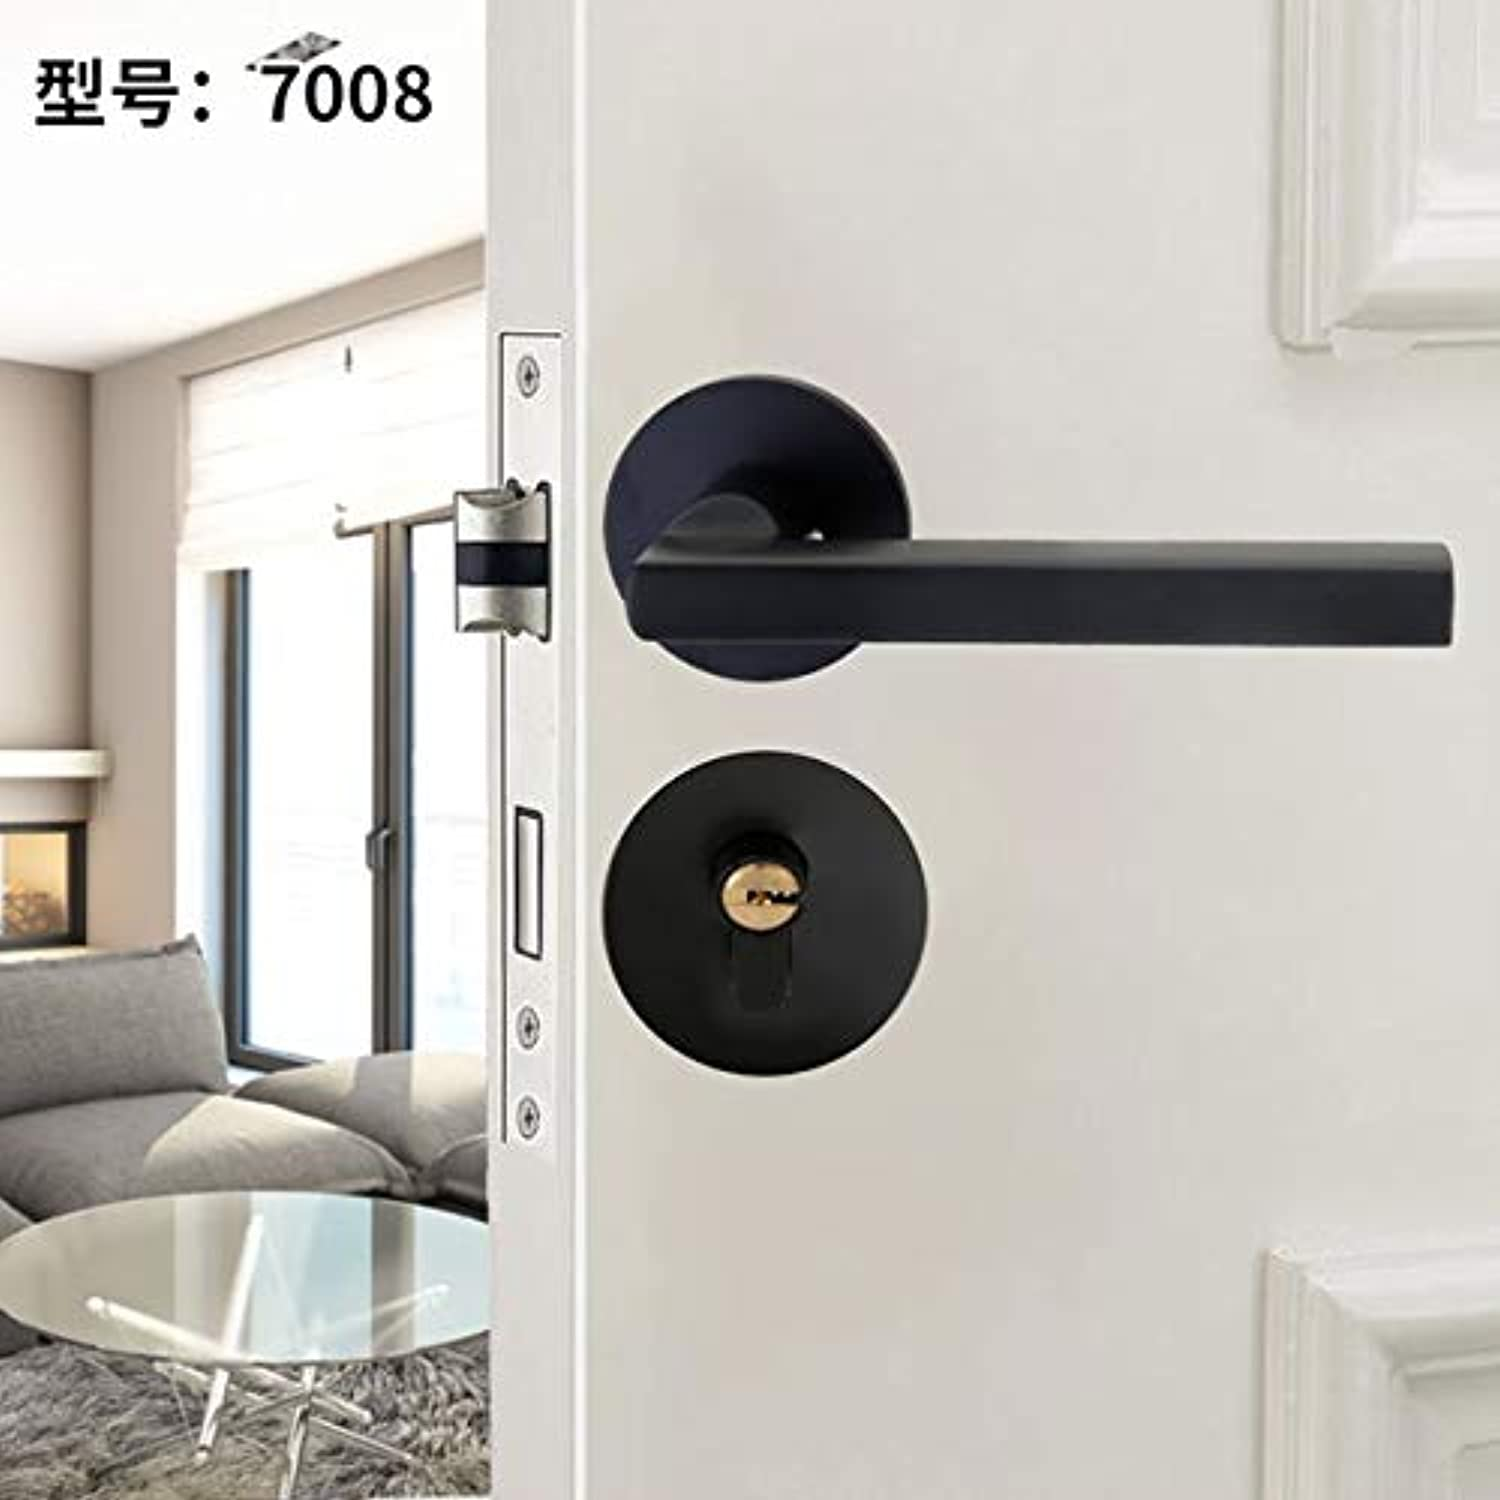 Household HighQuality Aluminium Door Lock Black Indoor Lock Solid Wood Door Handle Lock American Silent Split Lock  (color  Black7008)